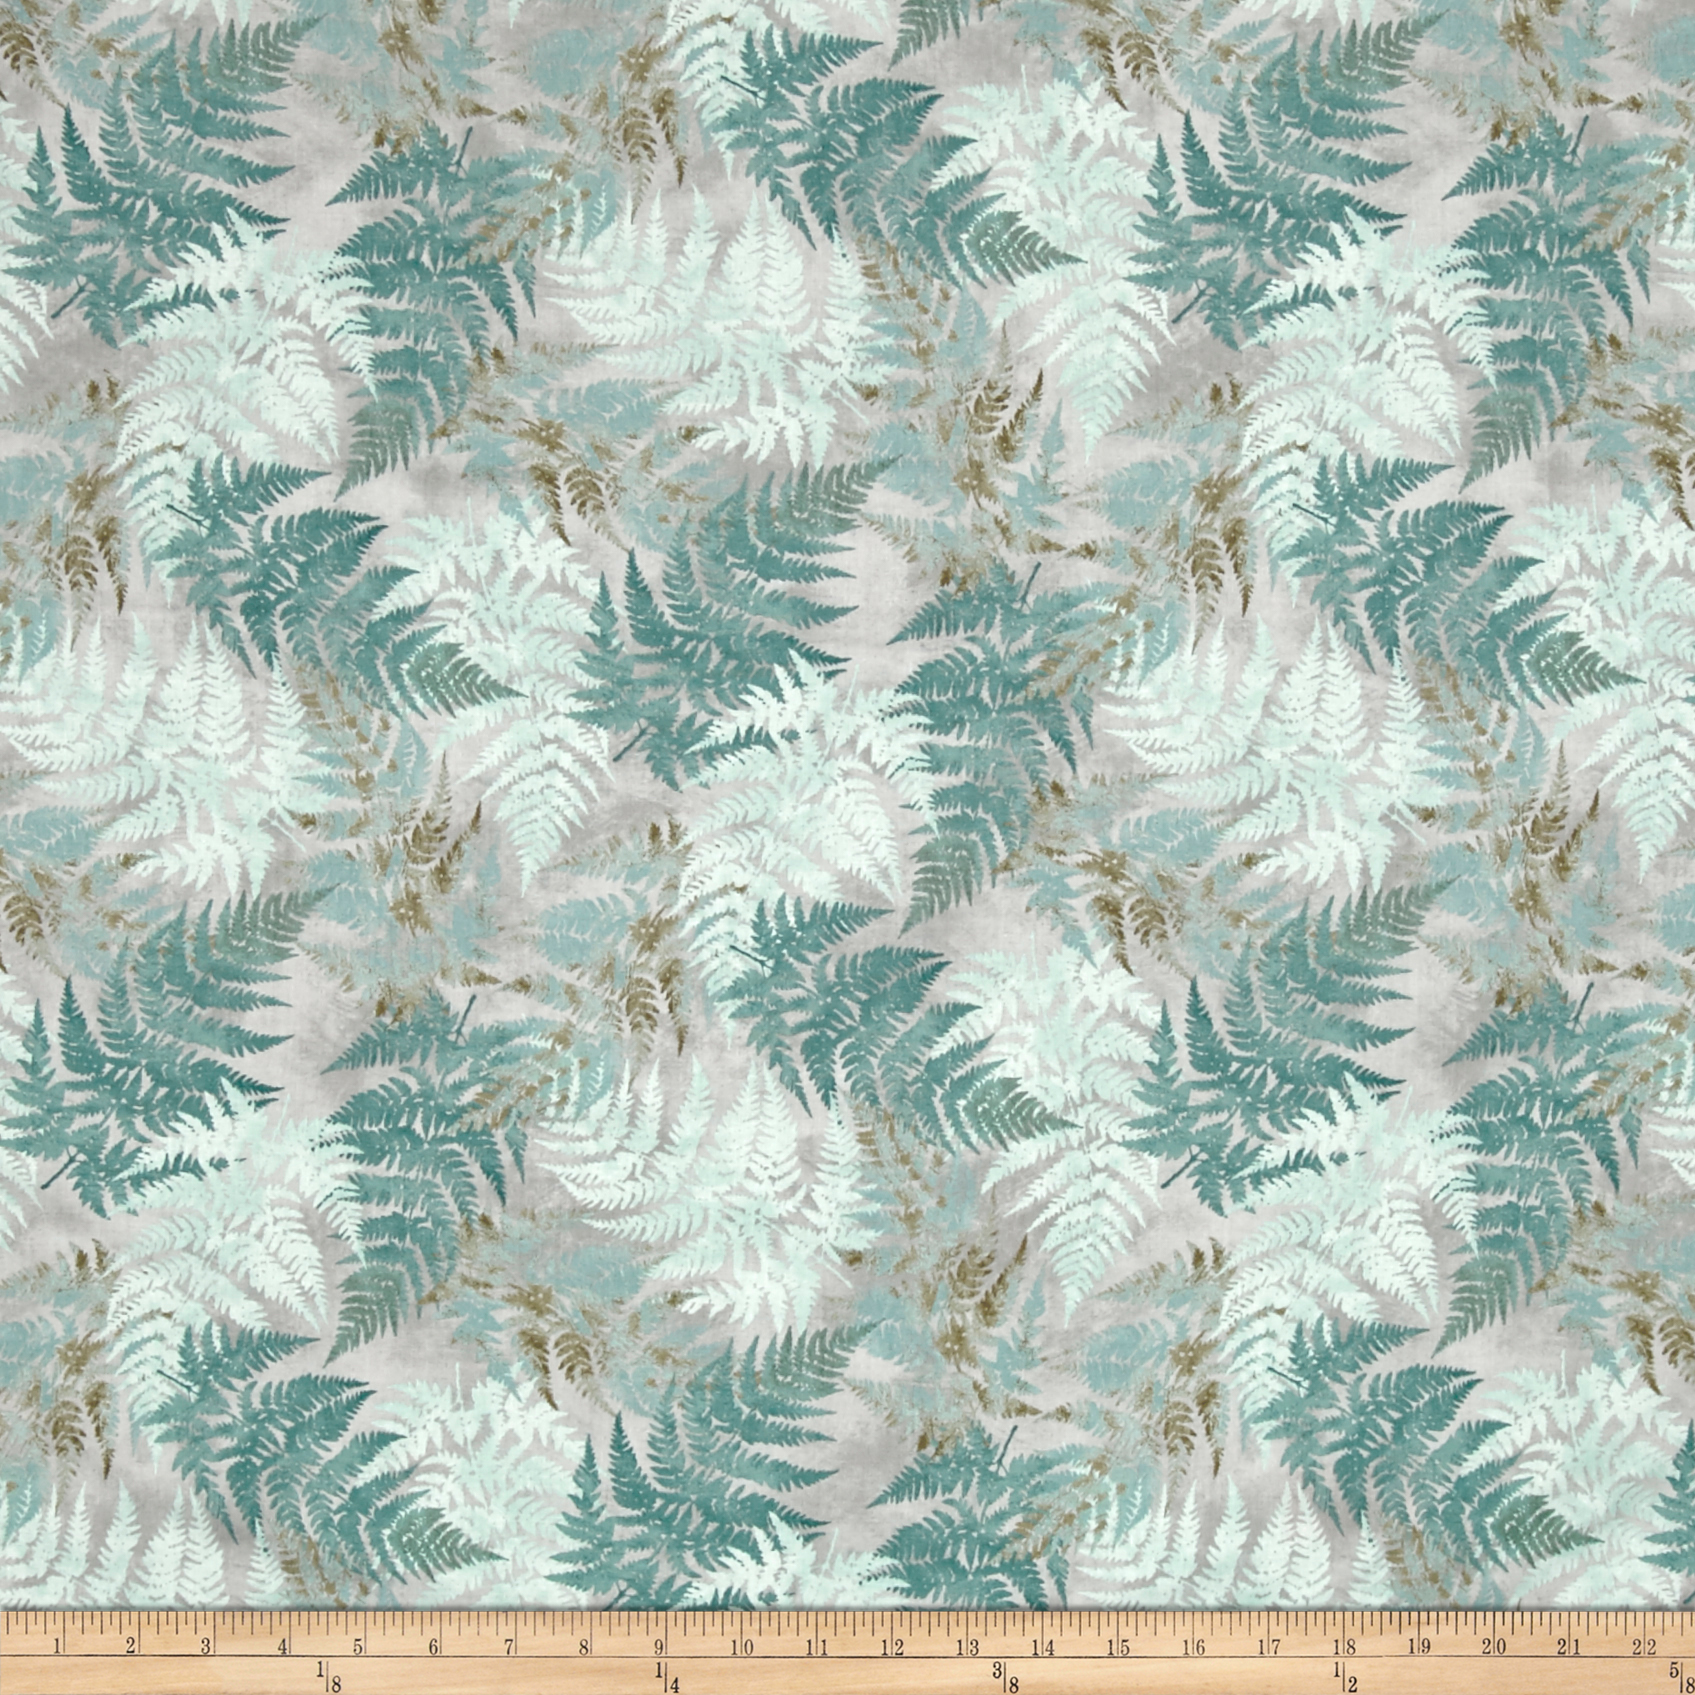 Neutral Nature Ferns Allover Grey Fabric by MM Fab in USA